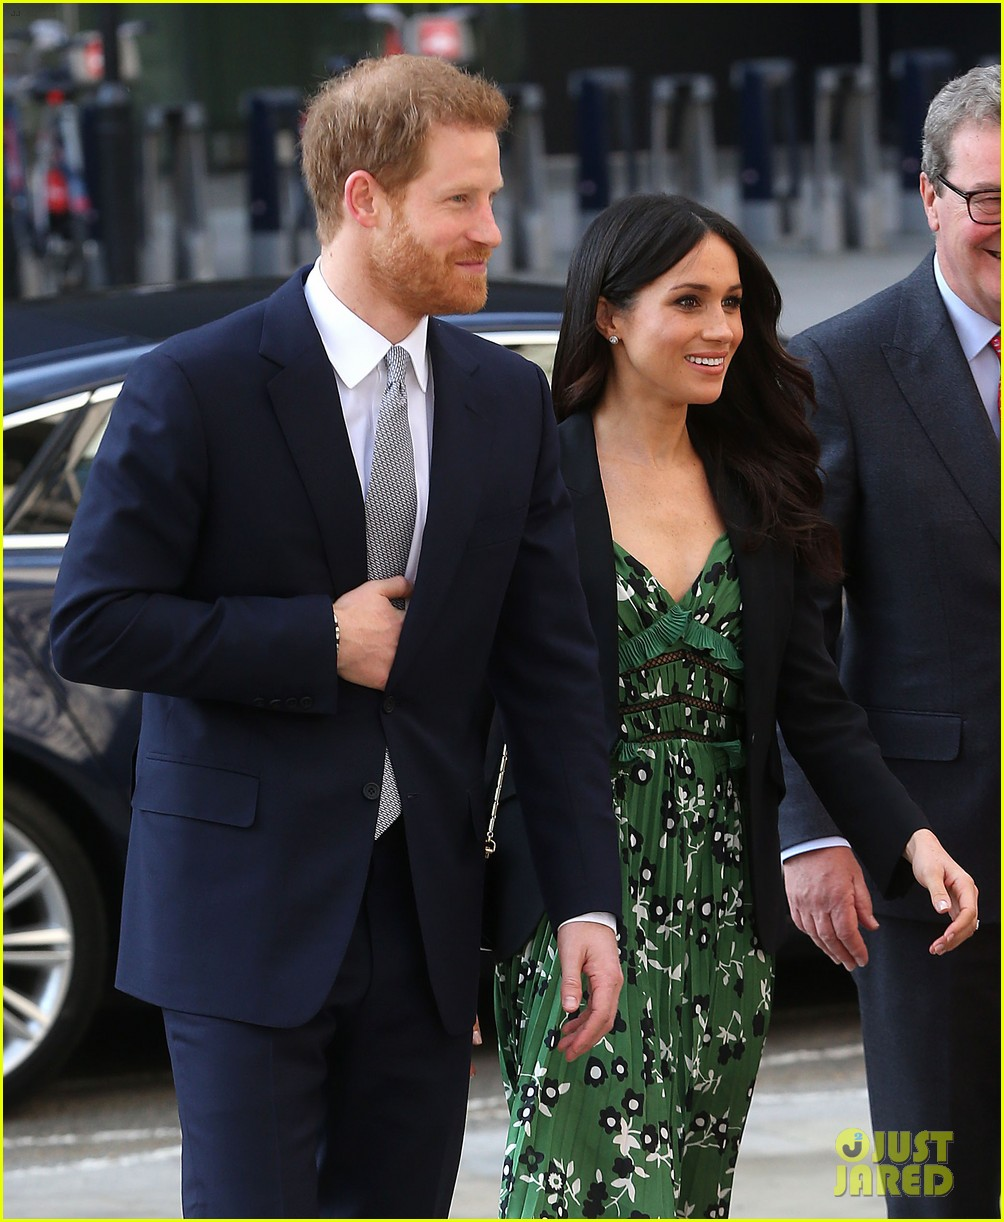 Meghan Markle Rewears Her Favorite Blazer At Event With